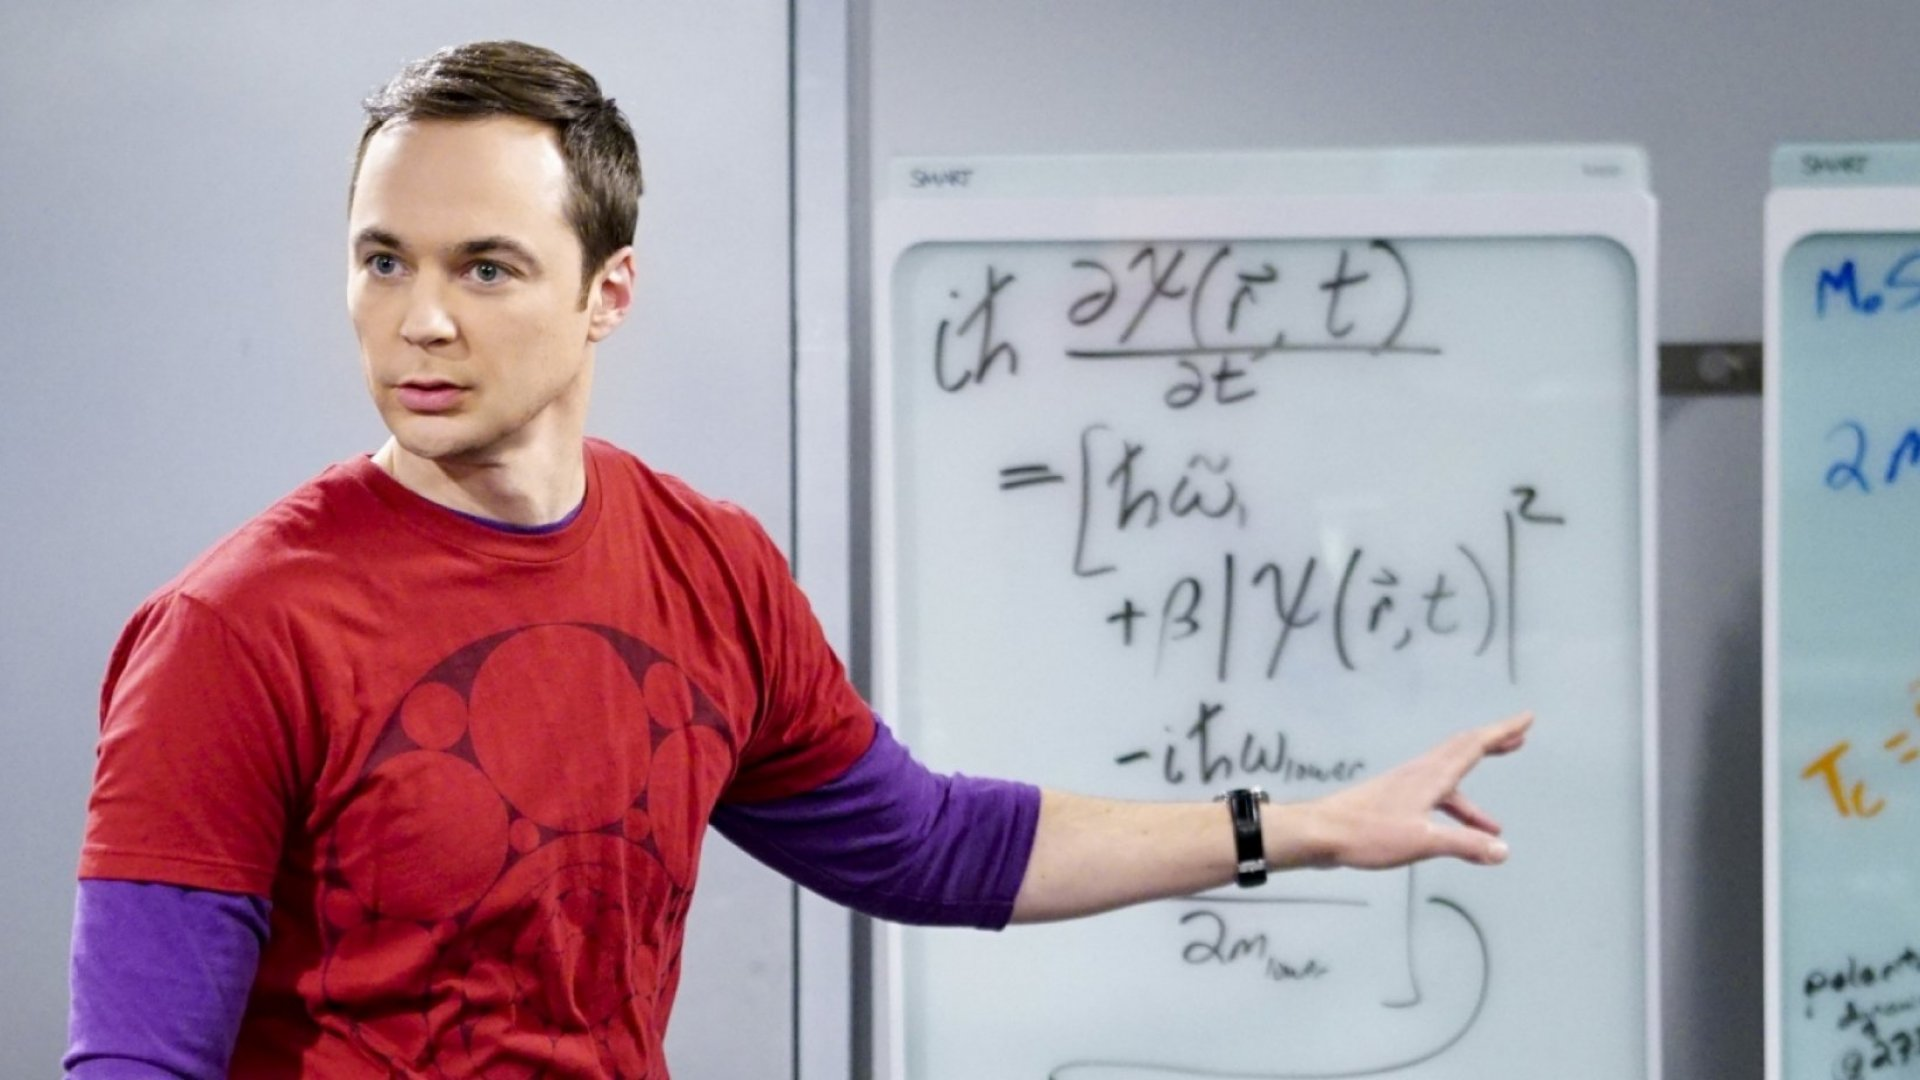 <em>The Big Bang Theory</em>'s Sheldon Cooper (played by Jim Parsons) is famously empathy-challenged. Maybe his genes are to blame.